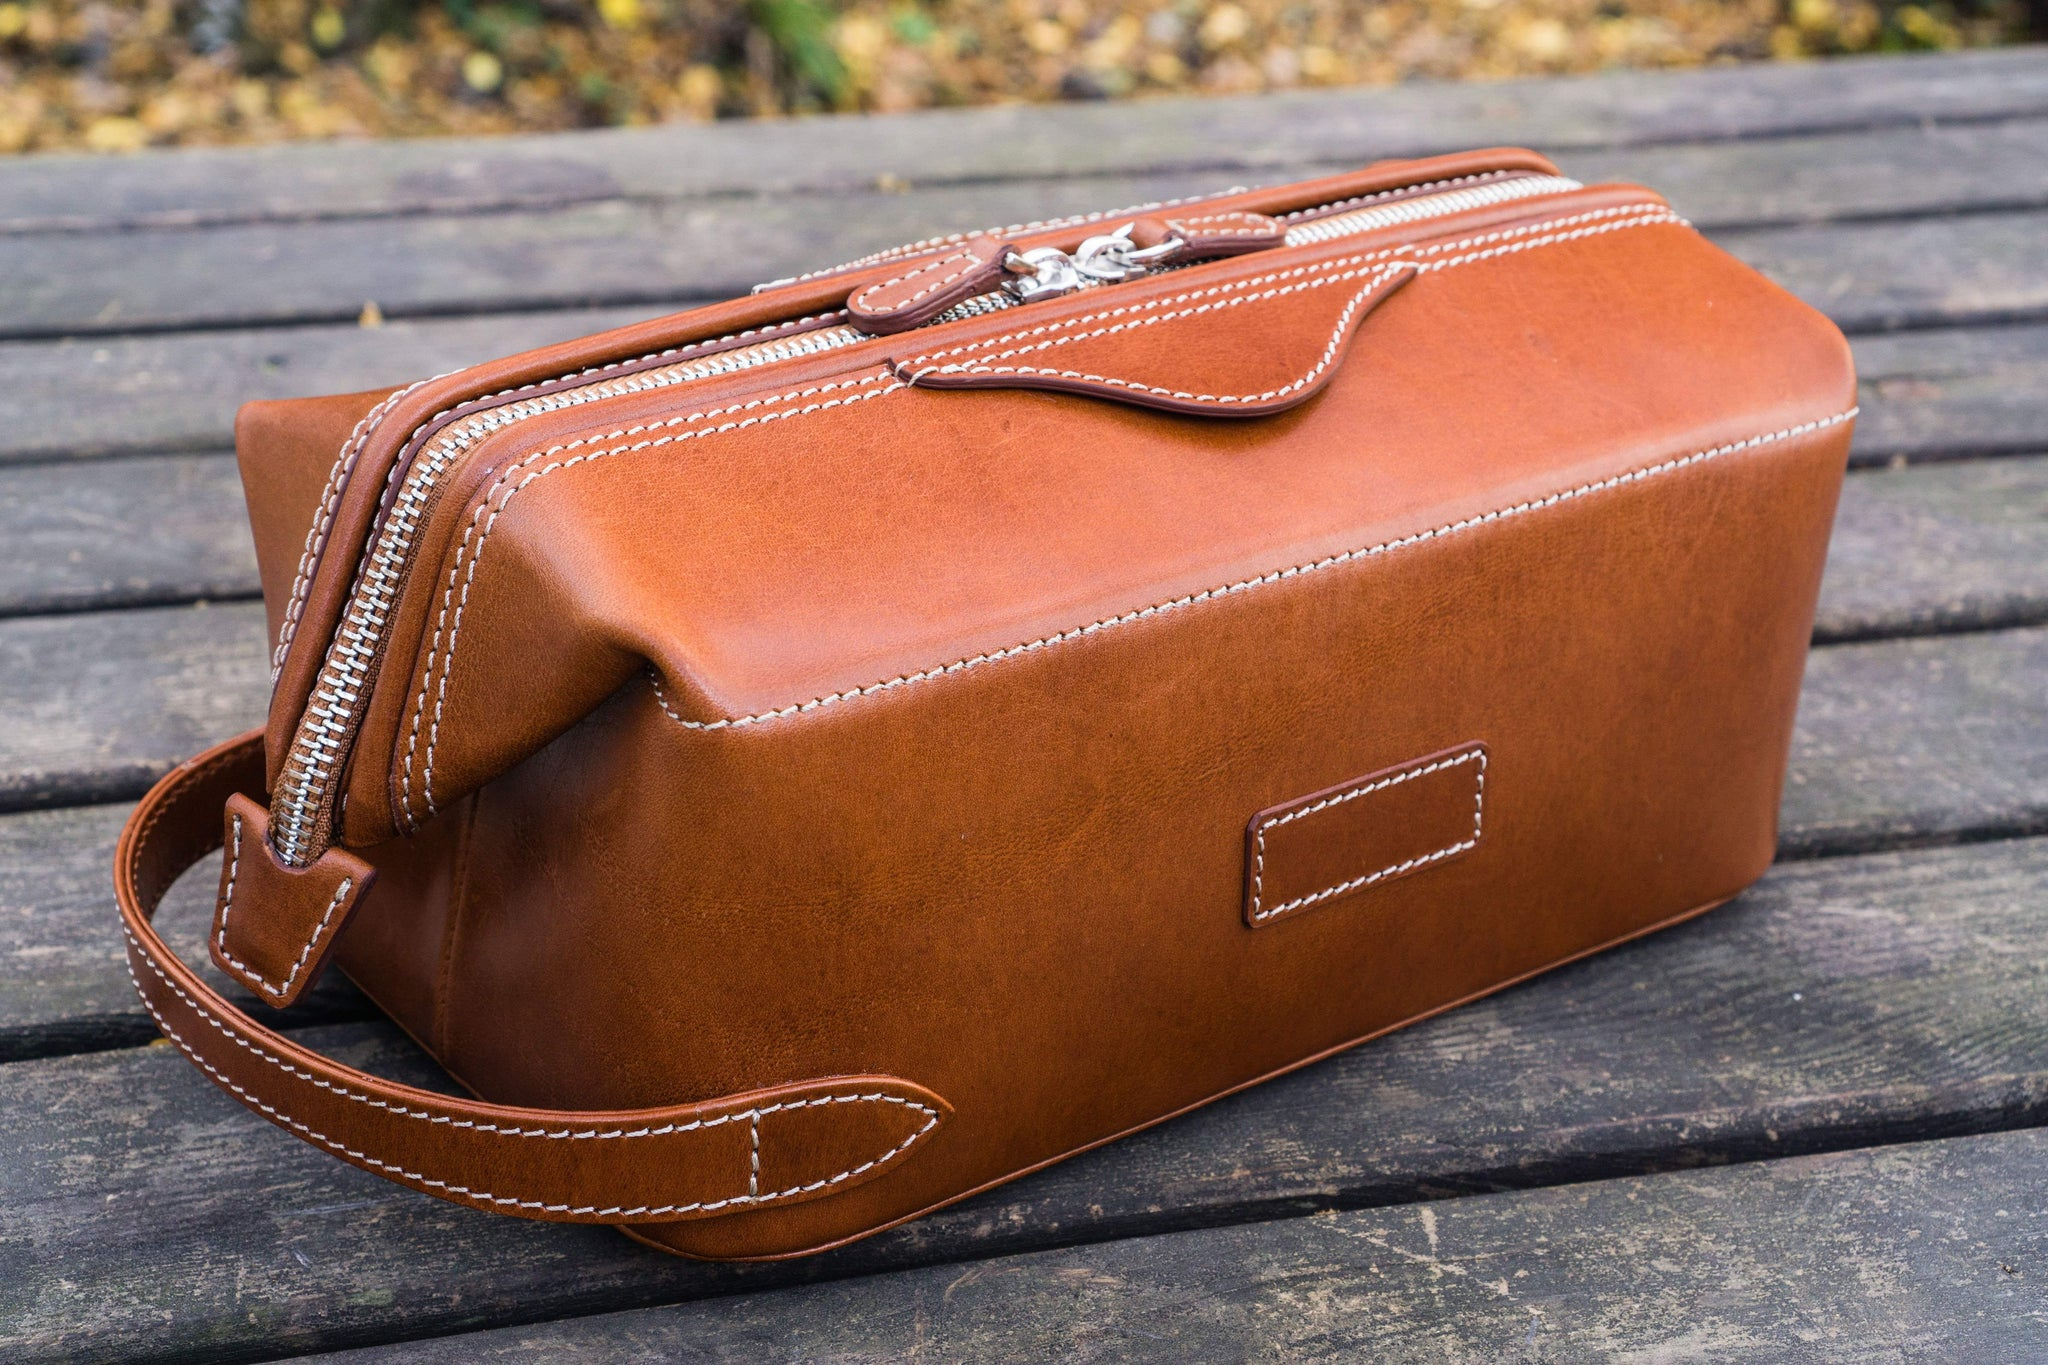 100% Handmade Leather Travel Dopp Kit - Brown - Galen Leather 4a578e9dd3a1f